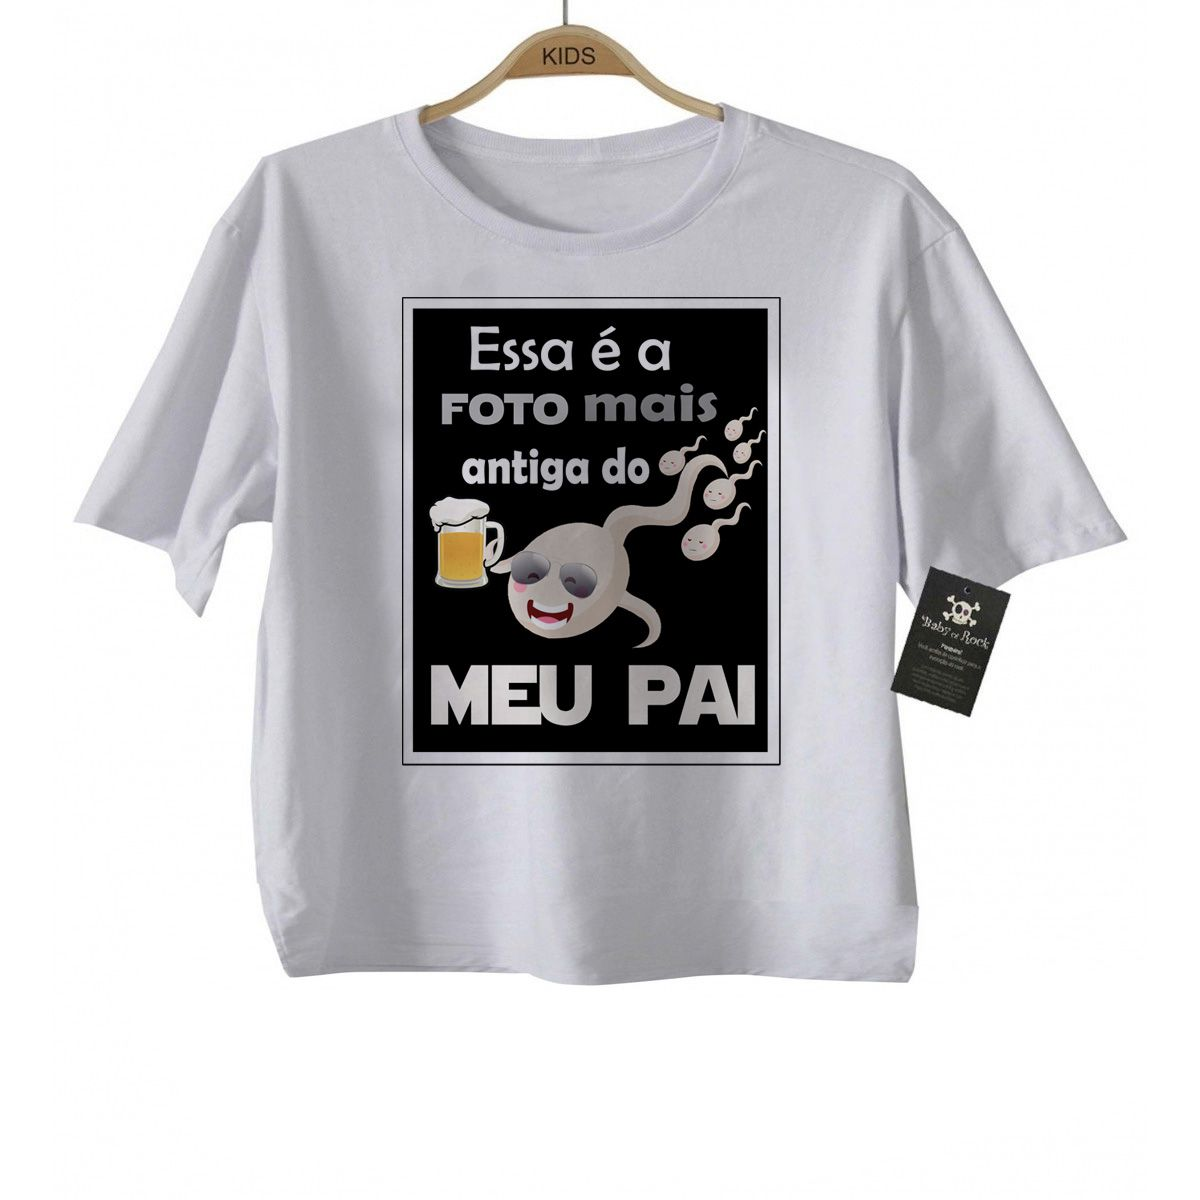 Camiseta  Divertida  Foto mais antiga do meu pai Infantil - White  - Baby Monster - Body Bebe